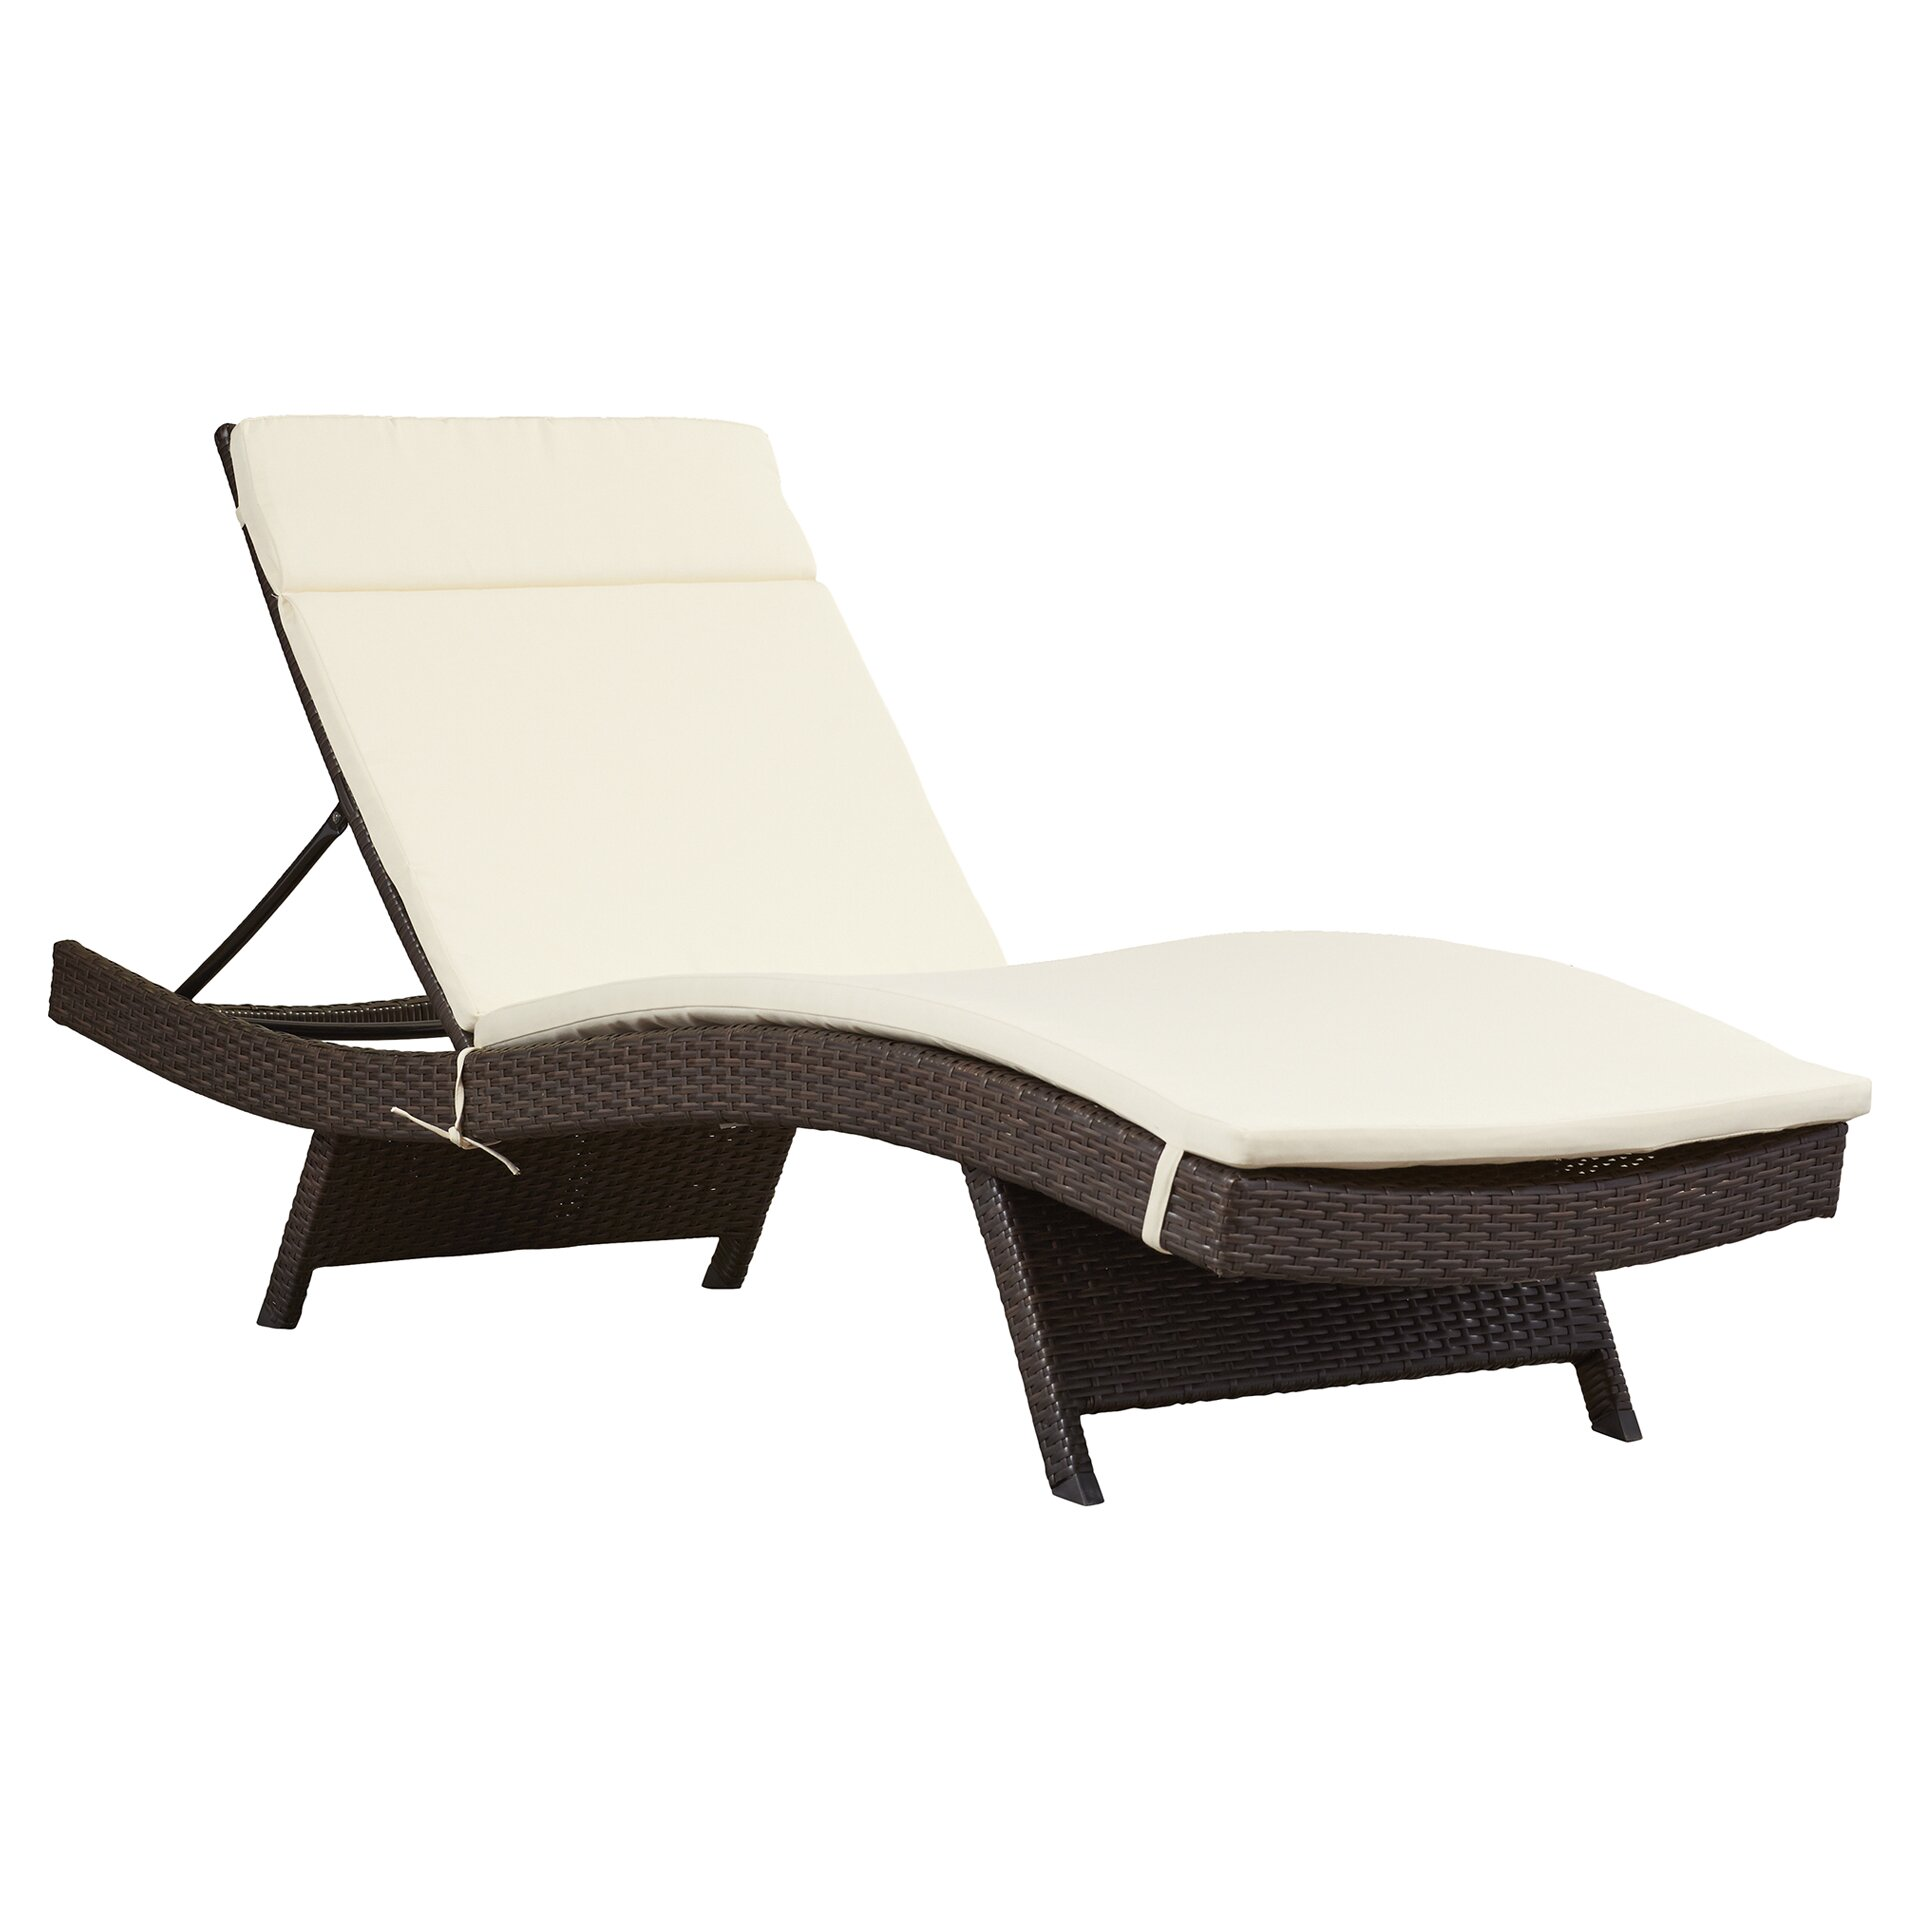 Brayden studio garry wicker adjustable chaise lounge with for Baby chaise lounge